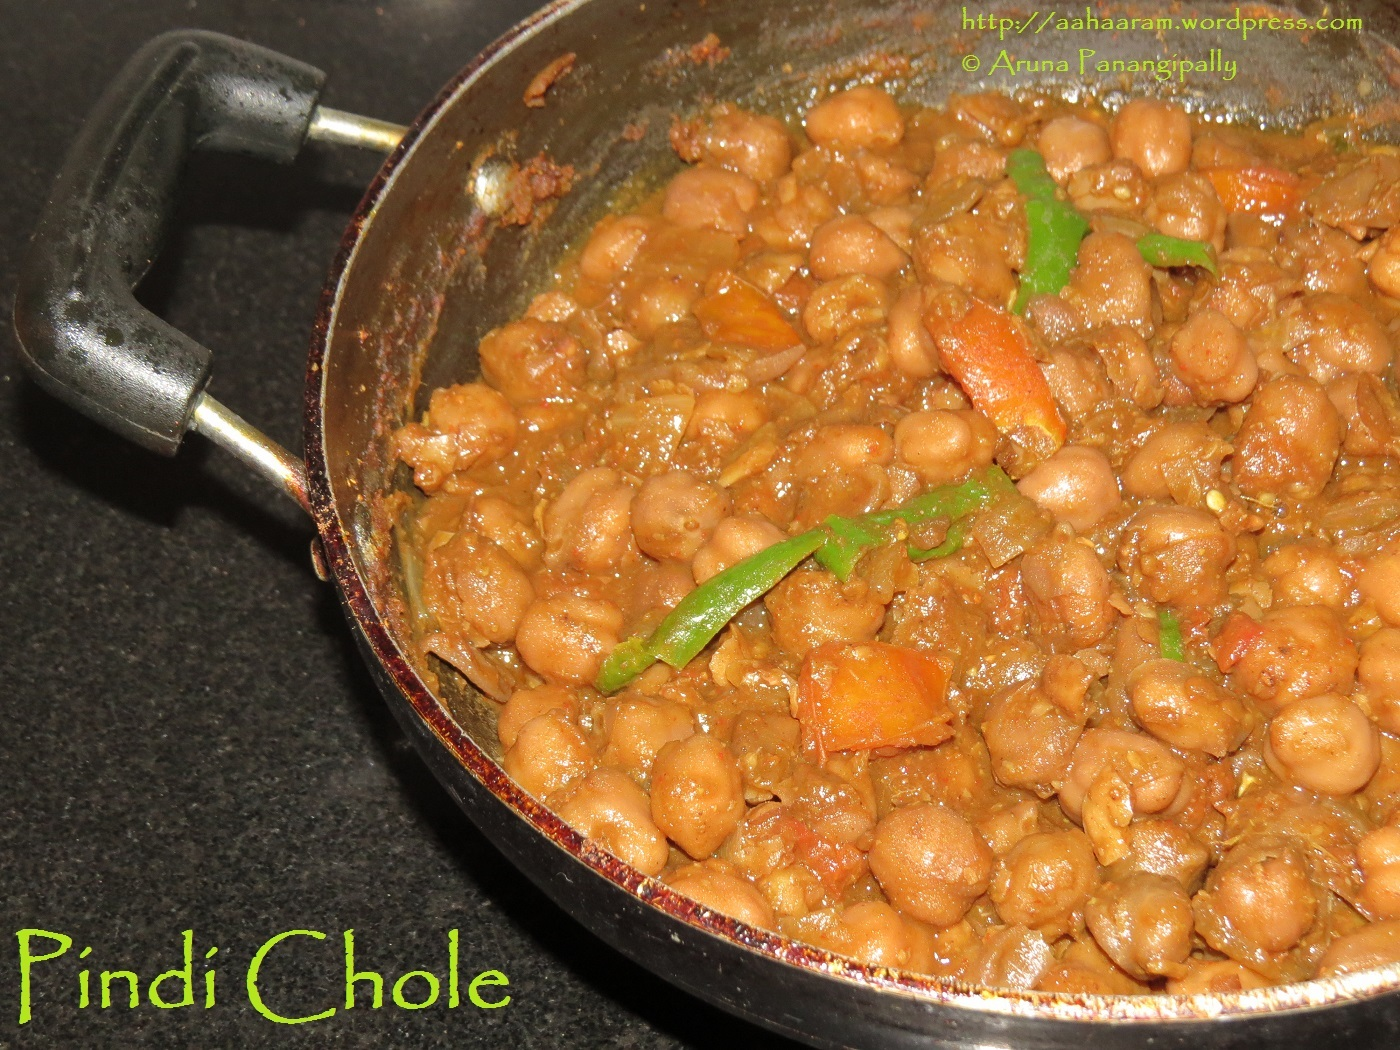 Pindi Chole or Pindi Chana (Spicy Chickpeas)